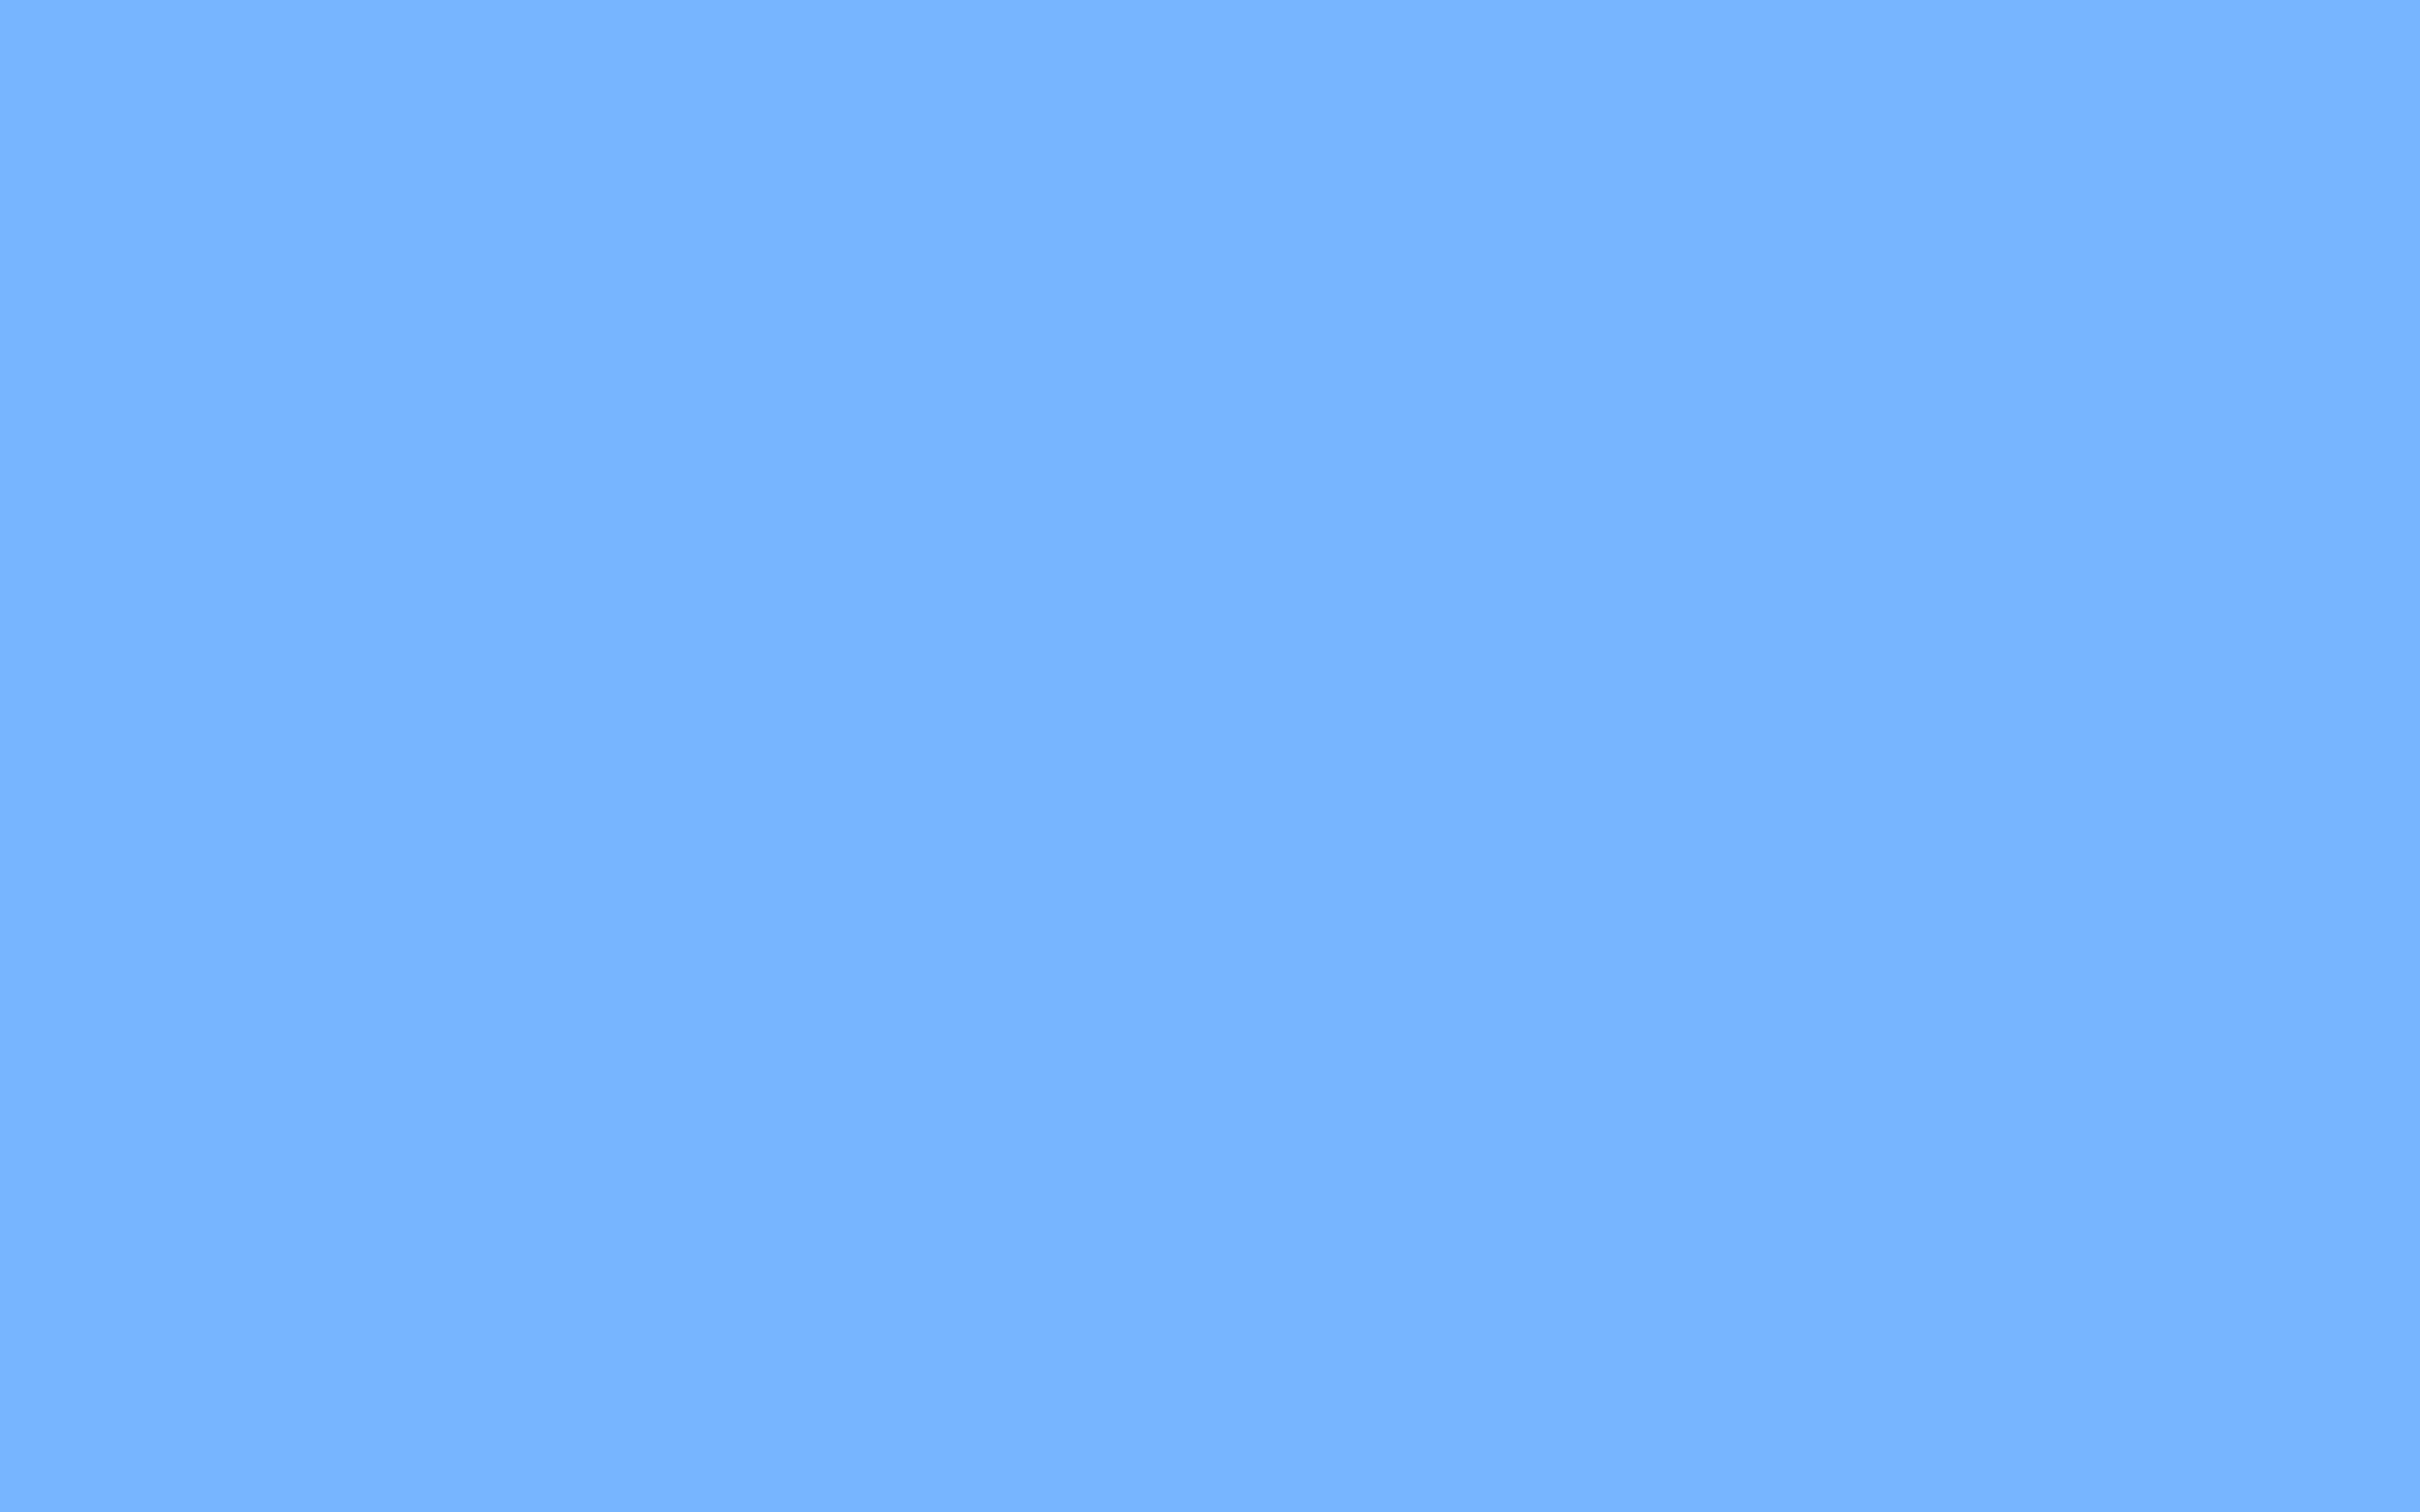 2560x1600 French Sky Blue Solid Color Background